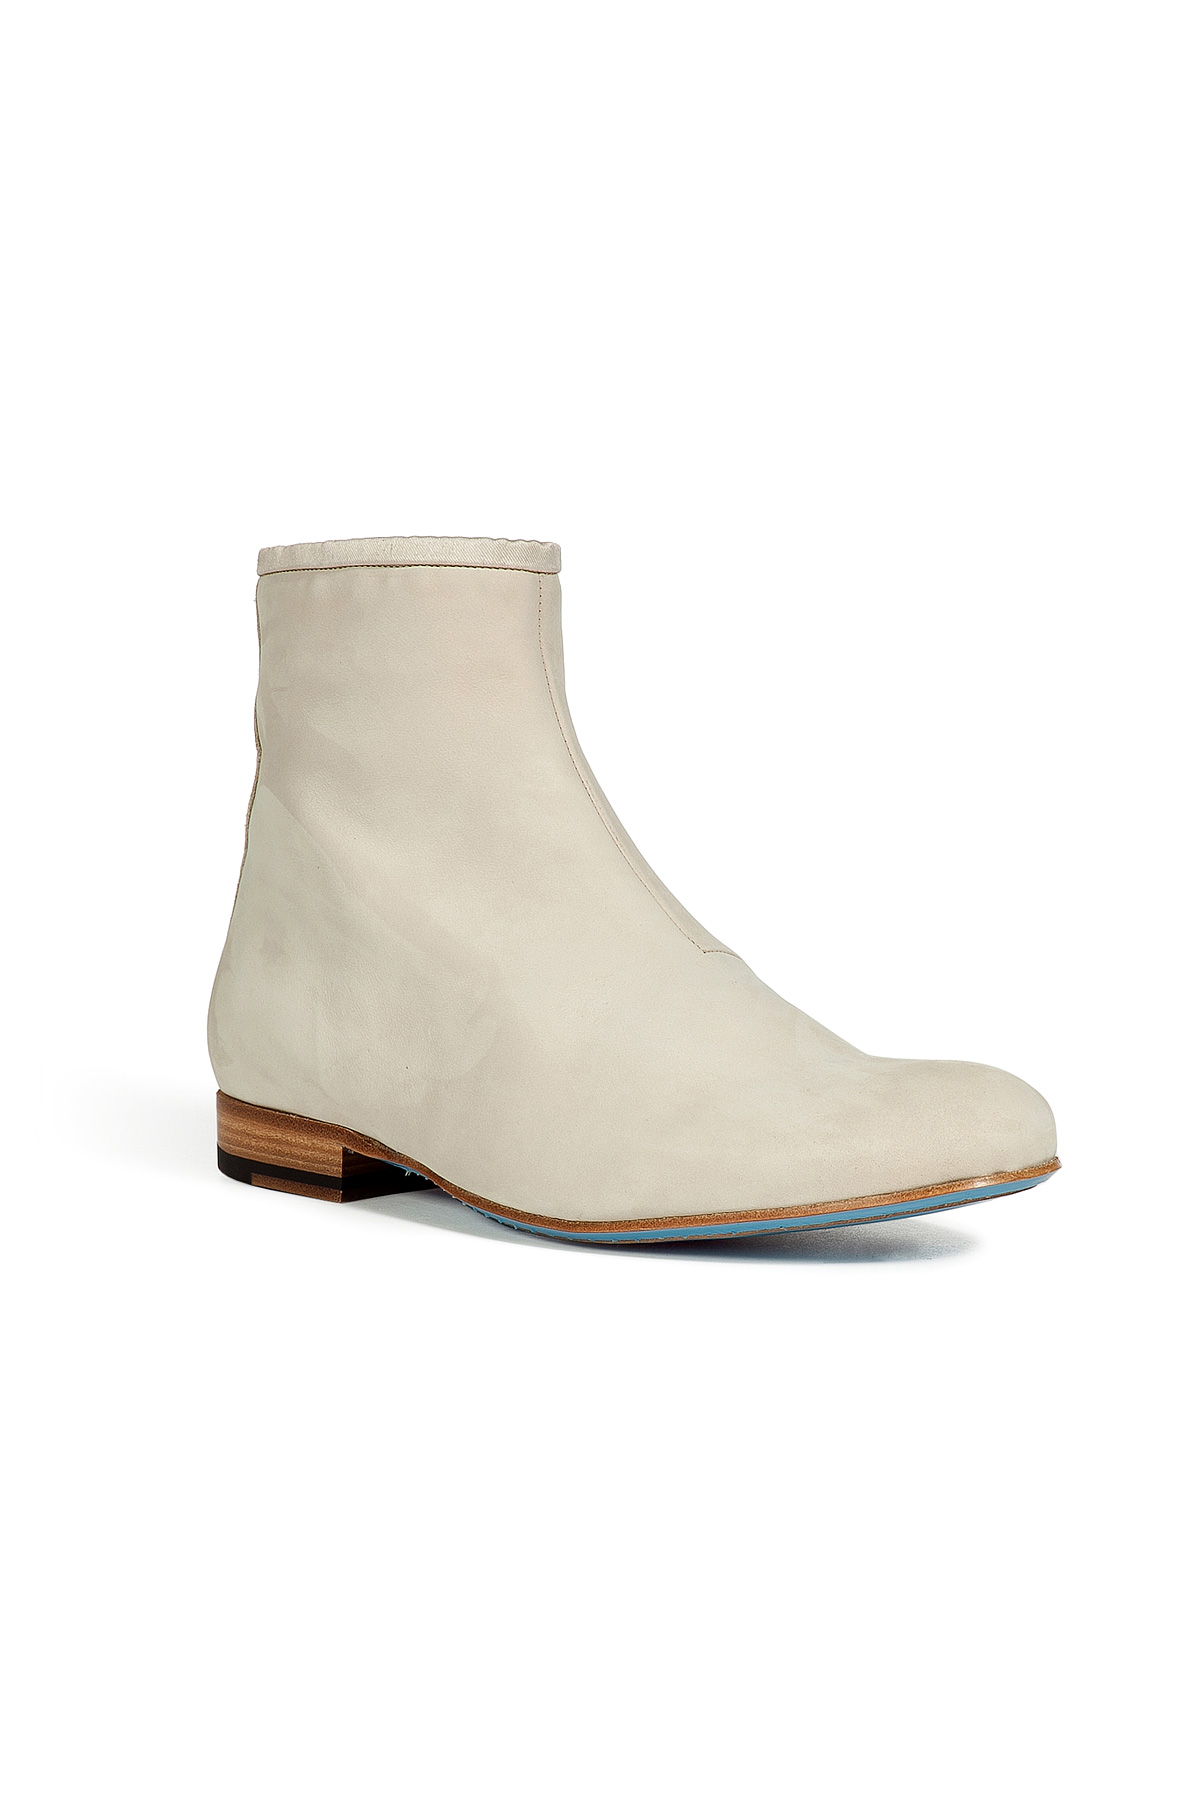 marc chalk suede chelsea boots in white for